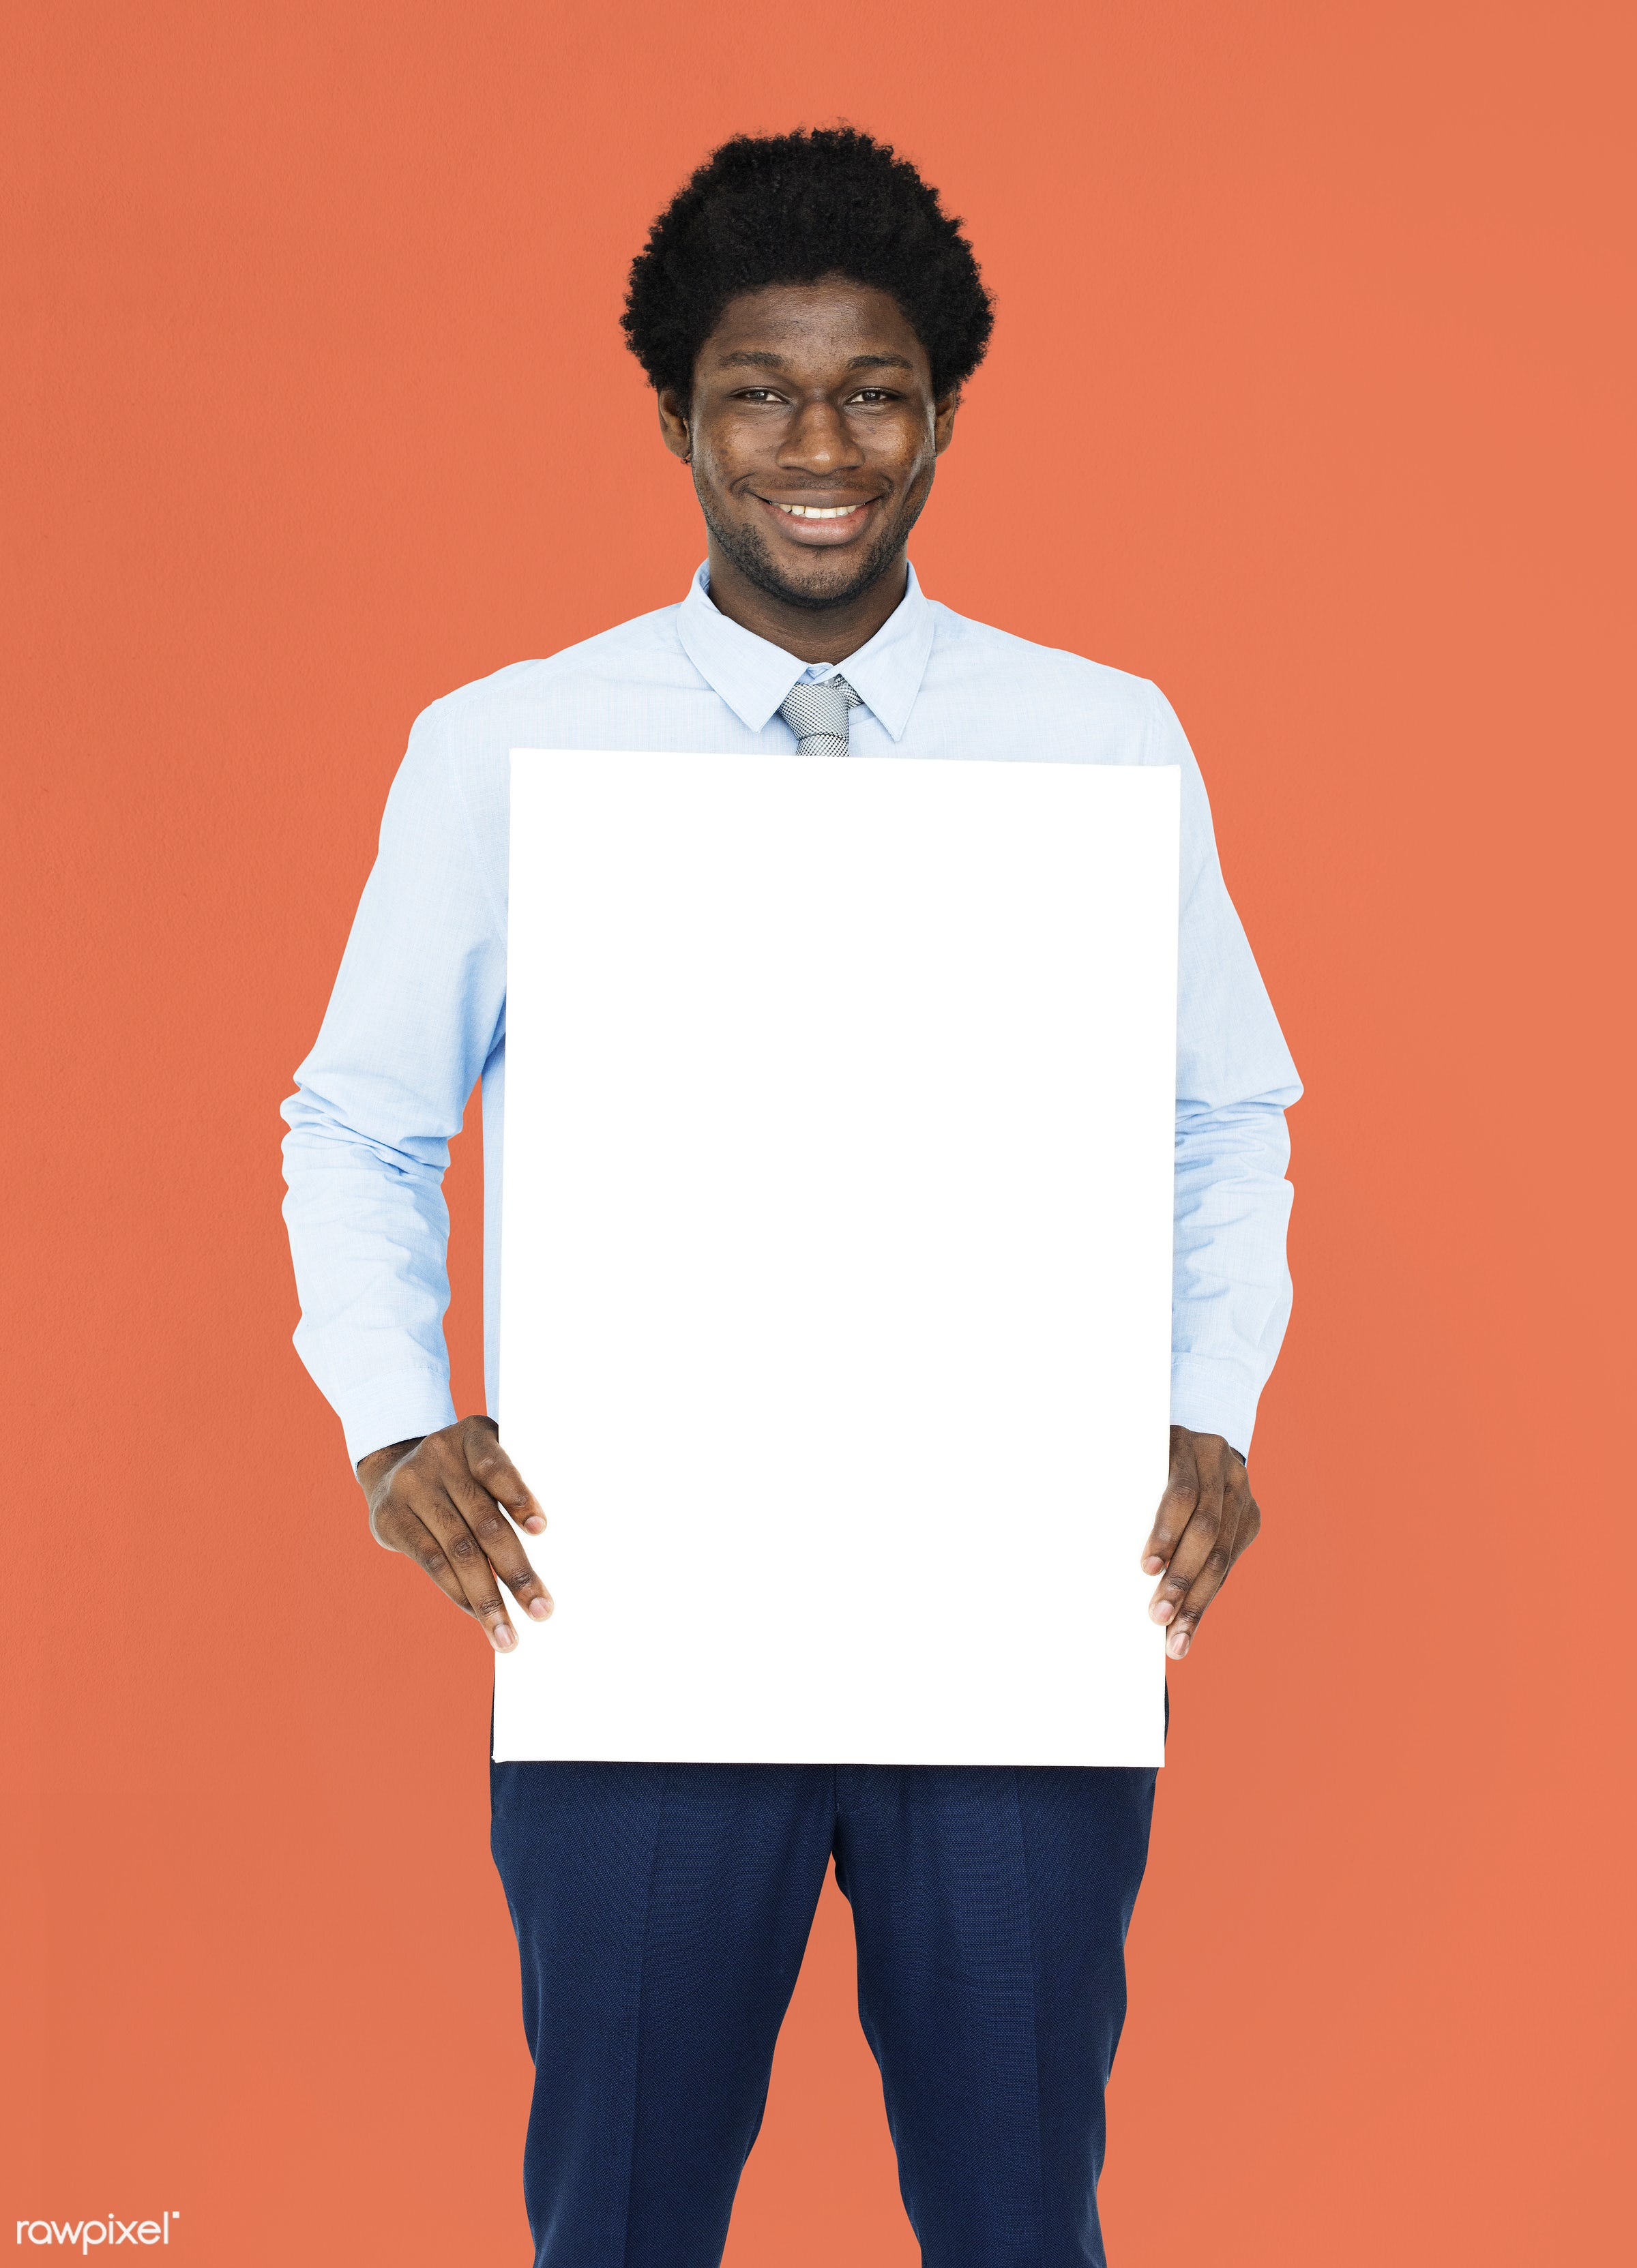 studio, expression, person, white collar worker, holding, people, empty, cheerful, black, smiling, isolated, african descent...